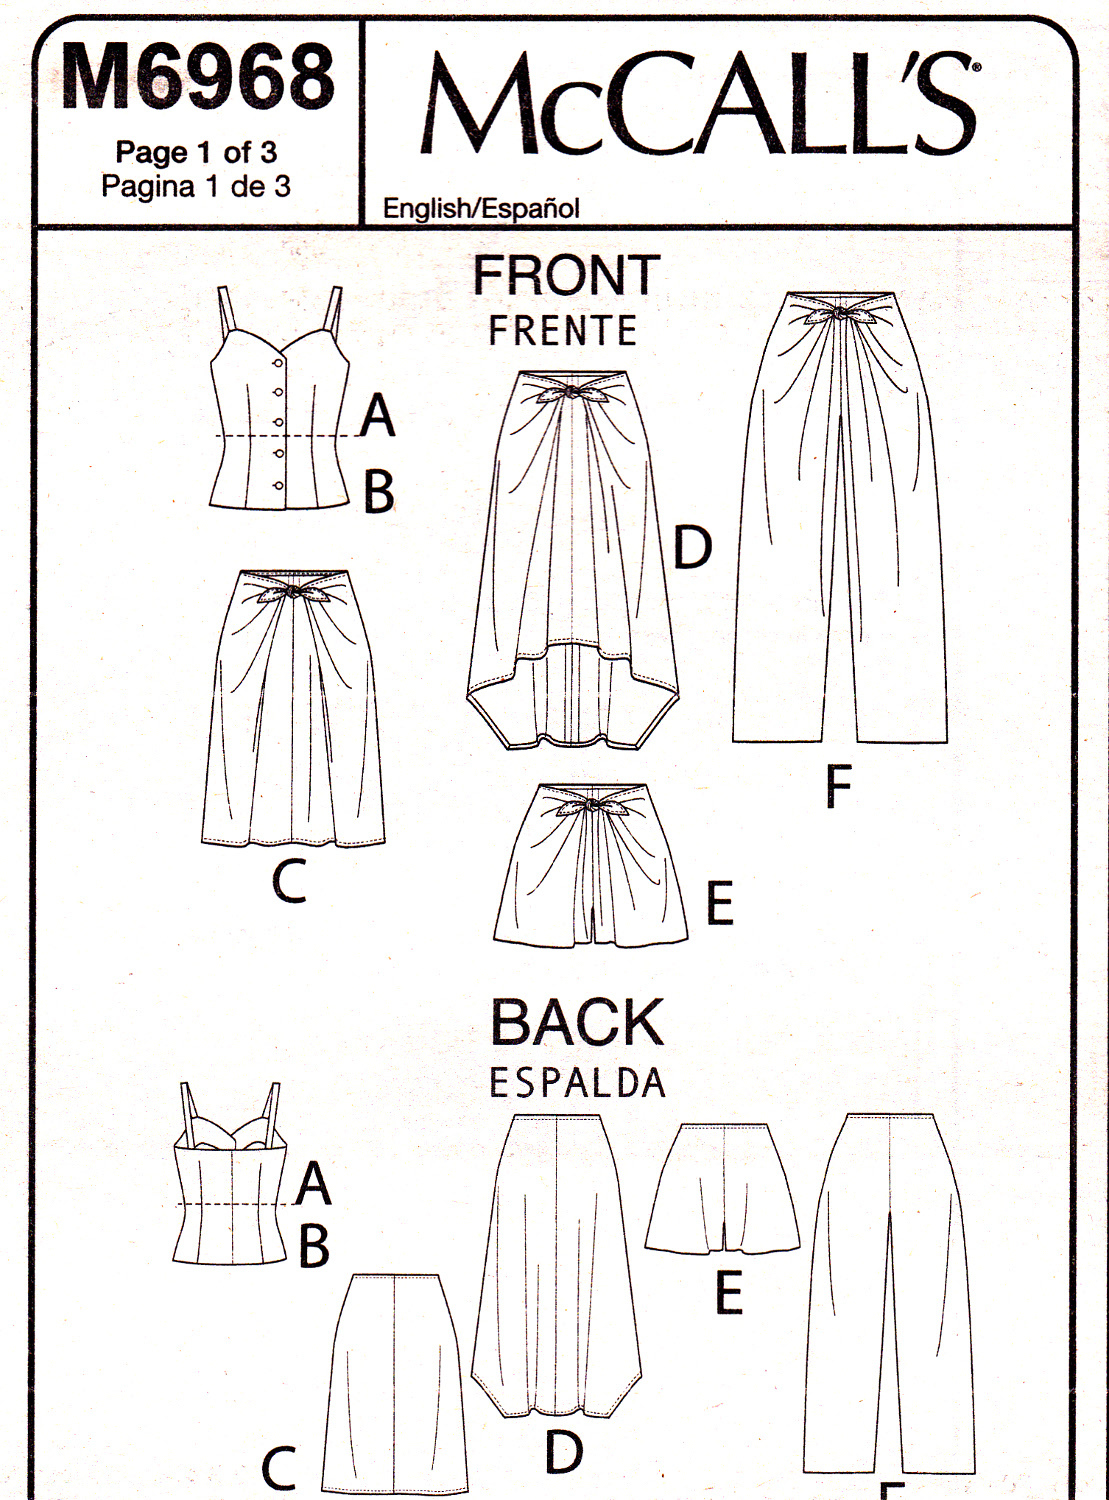 McCall's M6968 Womens Misses Tops Skirts Shorts Pants Sewing Pattern Sizes 14-22